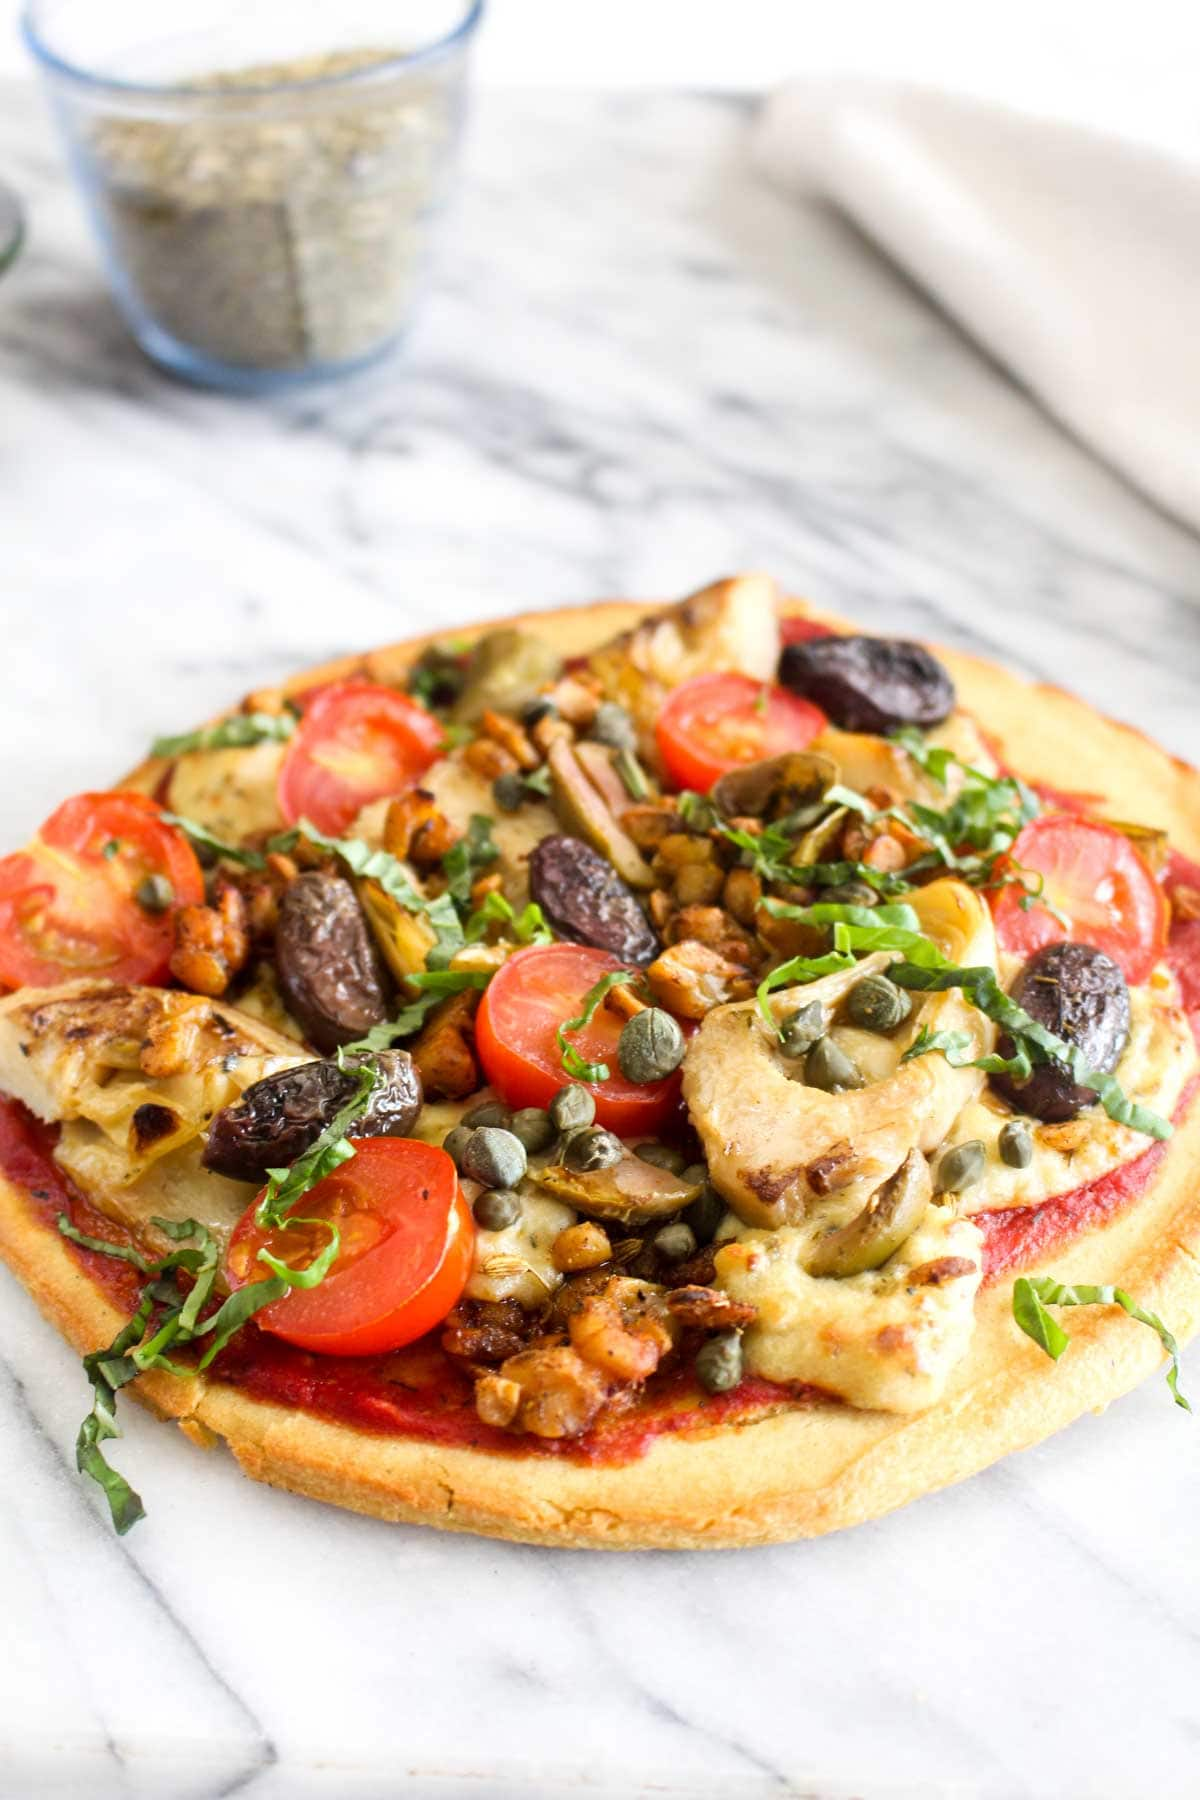 This Vegan Antipasti Pizza with Gluten Free Socca Crust is an allergy-free pizza recipe that everyone will enjoy. It is smothered in melty cheese and a host of flavorful toppings. | CatchingSeeds.com